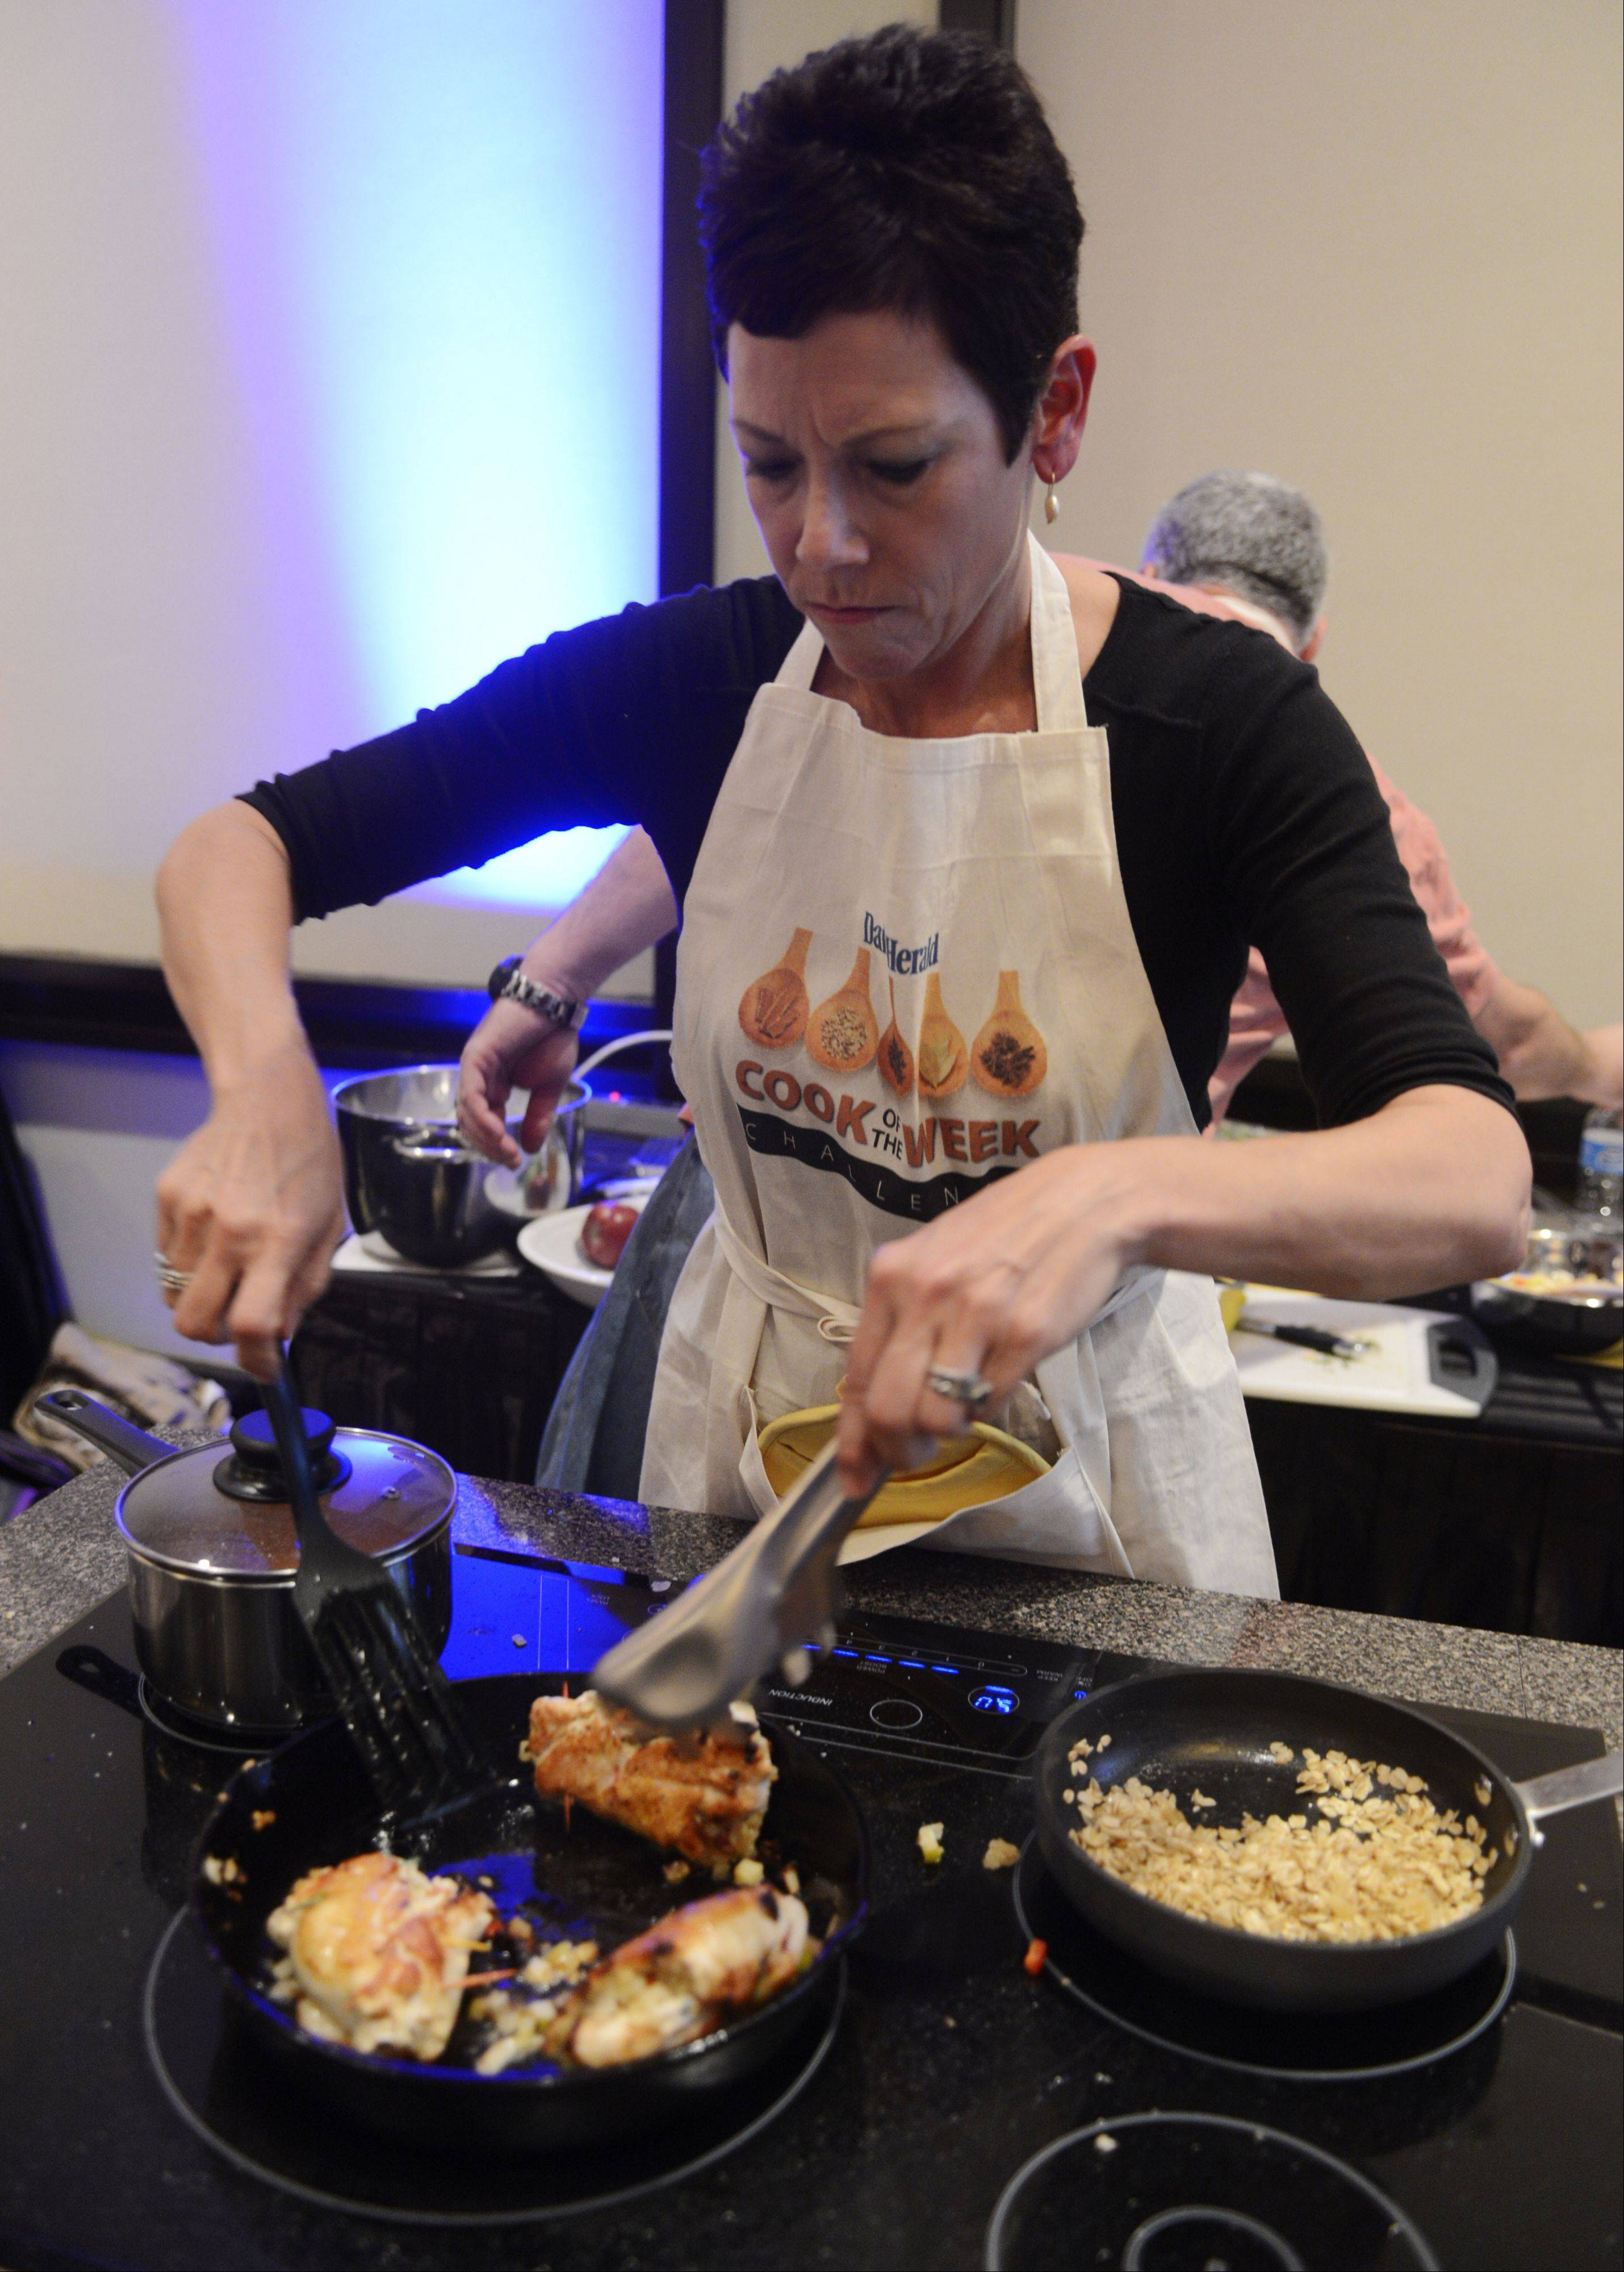 Lori Motyka of West Chicago turns her chicken during the Daily Herald Cook of the Week Cookoff finals, held at the Hyatt Regency Schaumburg Wednesday.